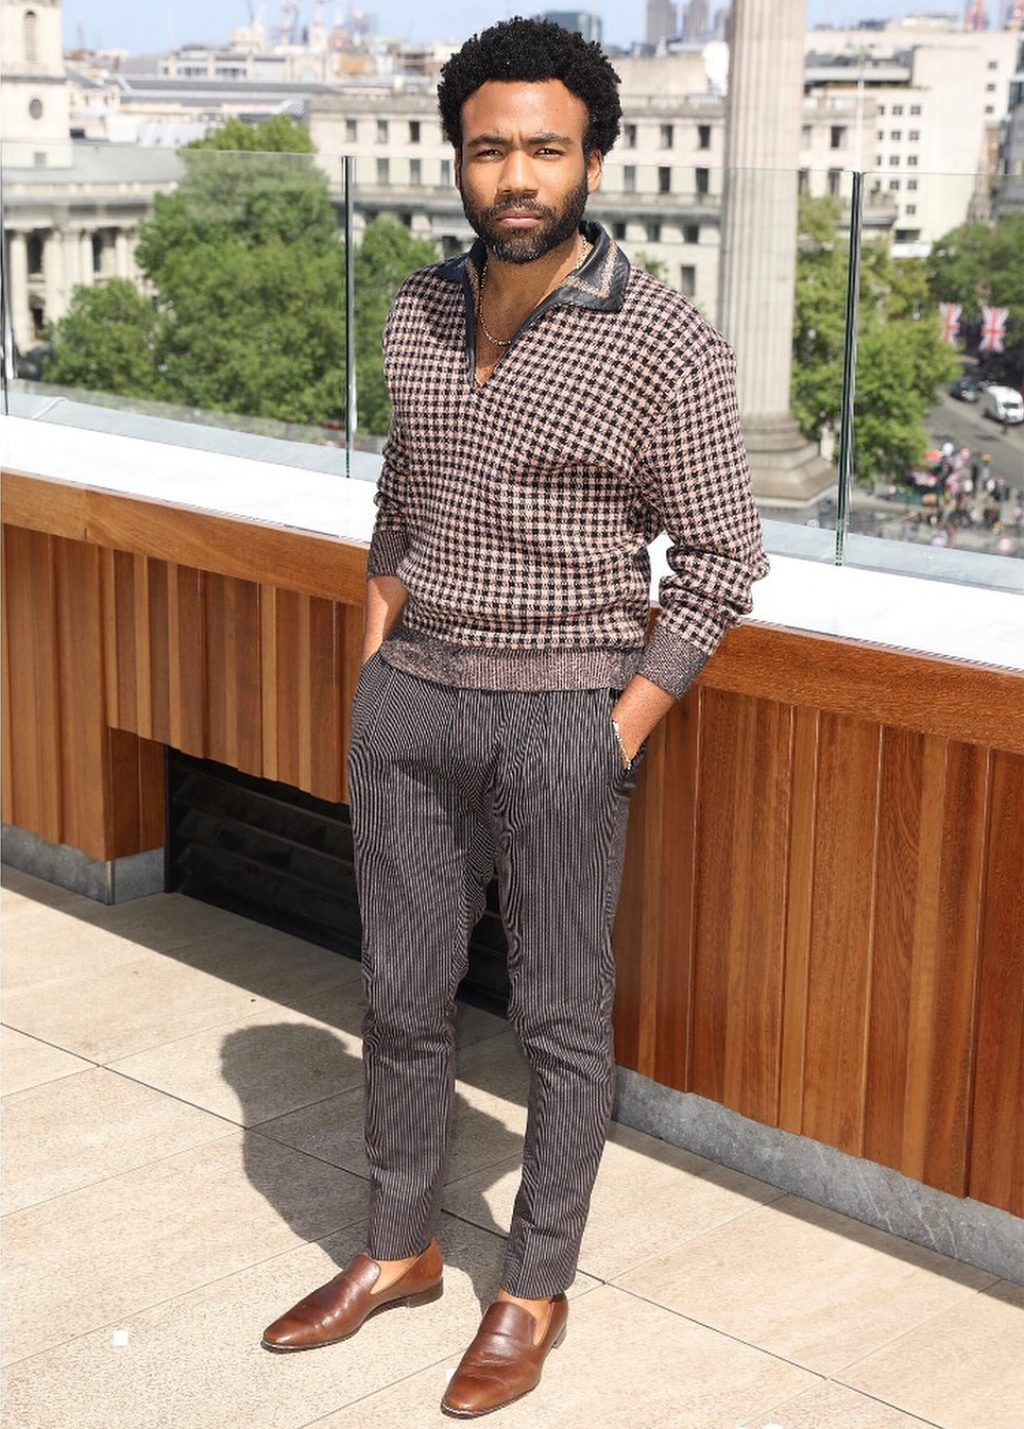 houndstooth knit sweater with a leather-trimmed collar mixed with tweed and stripped trousers accessorized with his signature loafers and no socks.